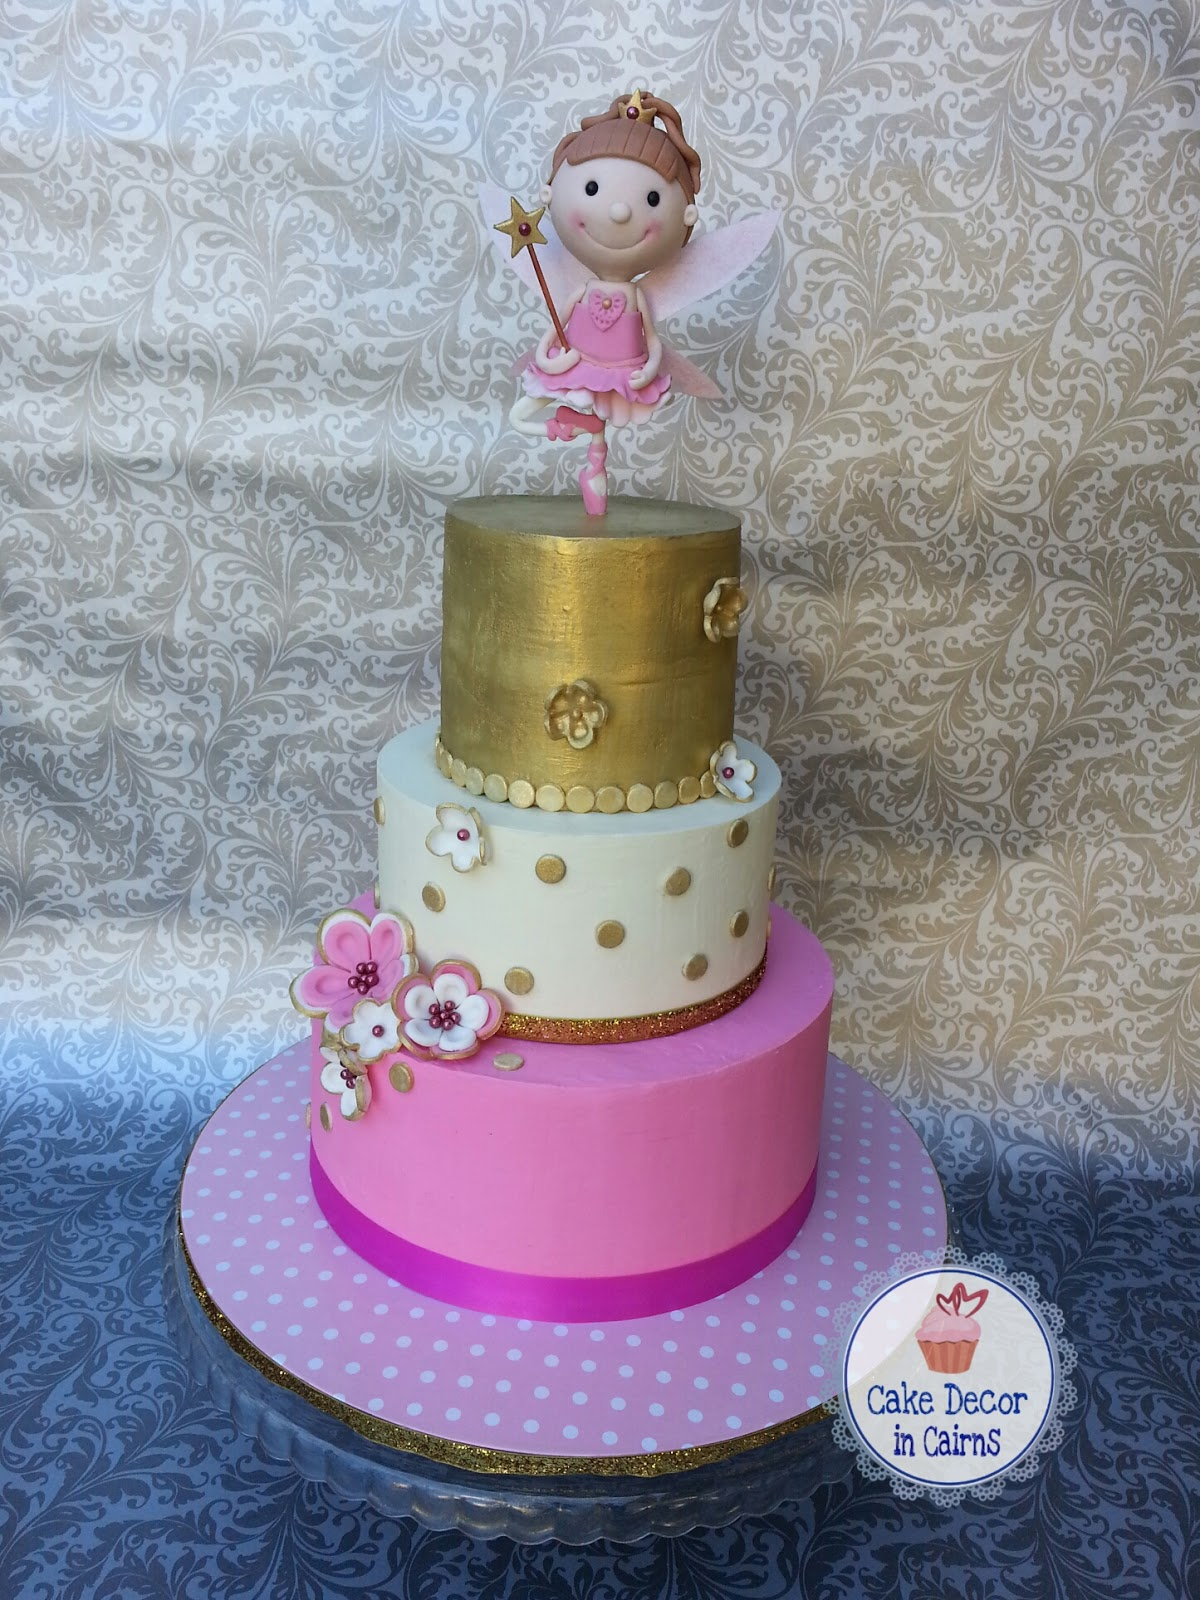 Cake Decor In Cairns How To Level And Torte A Cake